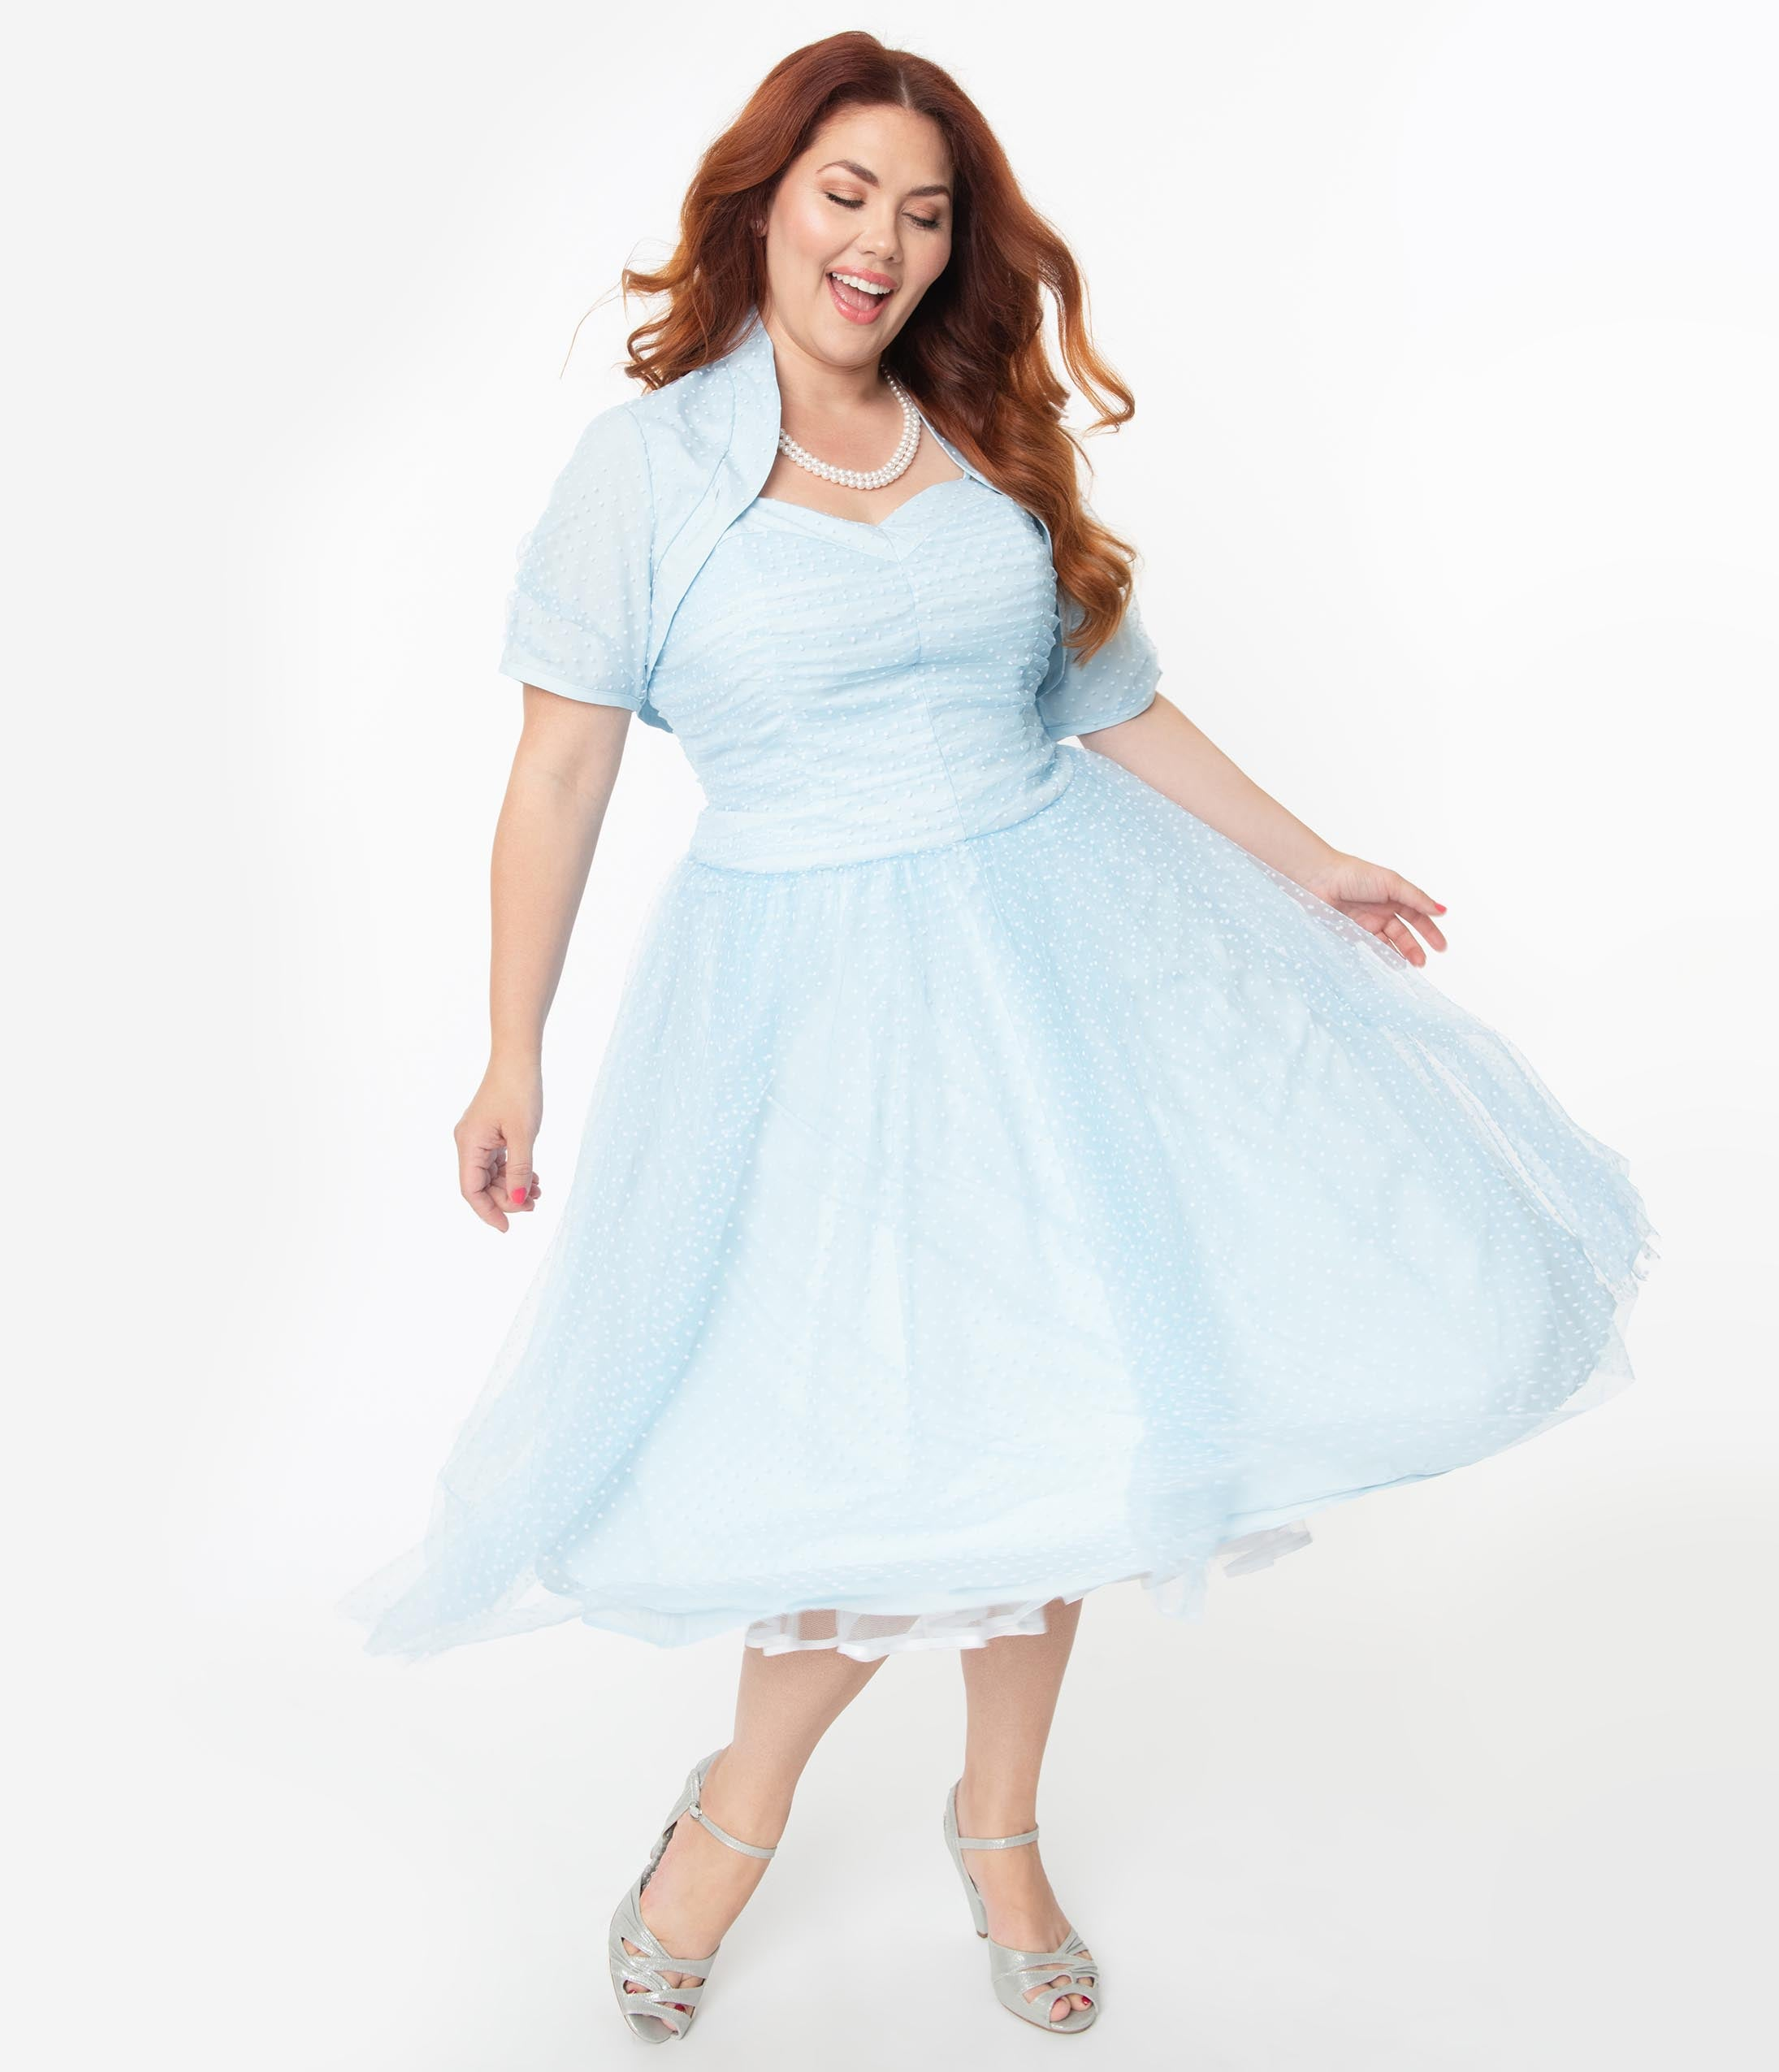 1950s Cocktail Dresses, Party Dresses I Love Lucy X Unique Vintage Plus Size Light Blue Honeymoon Swing Dress $148.00 AT vintagedancer.com